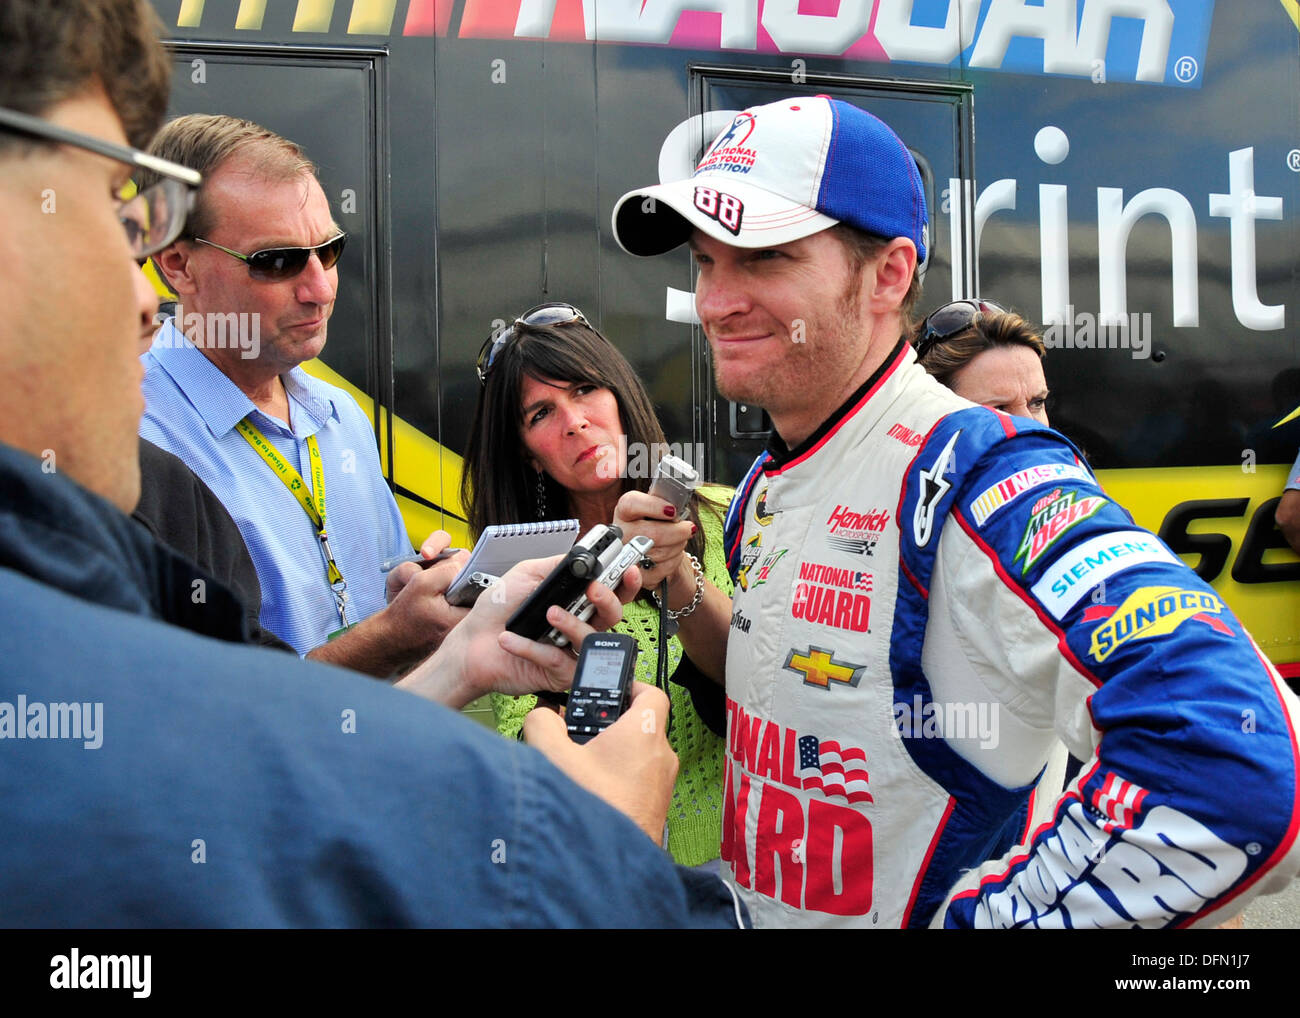 Dale Earnhardt, Jr., driver of the No. 88 National Guard Chevy, speaks to the media following his qualifying run for the AAA 400 Sept. 27, 2013, at Dover International Speedway in Dover, Del. Earnhardt earned the pole position, setting a new track record - Stock Image